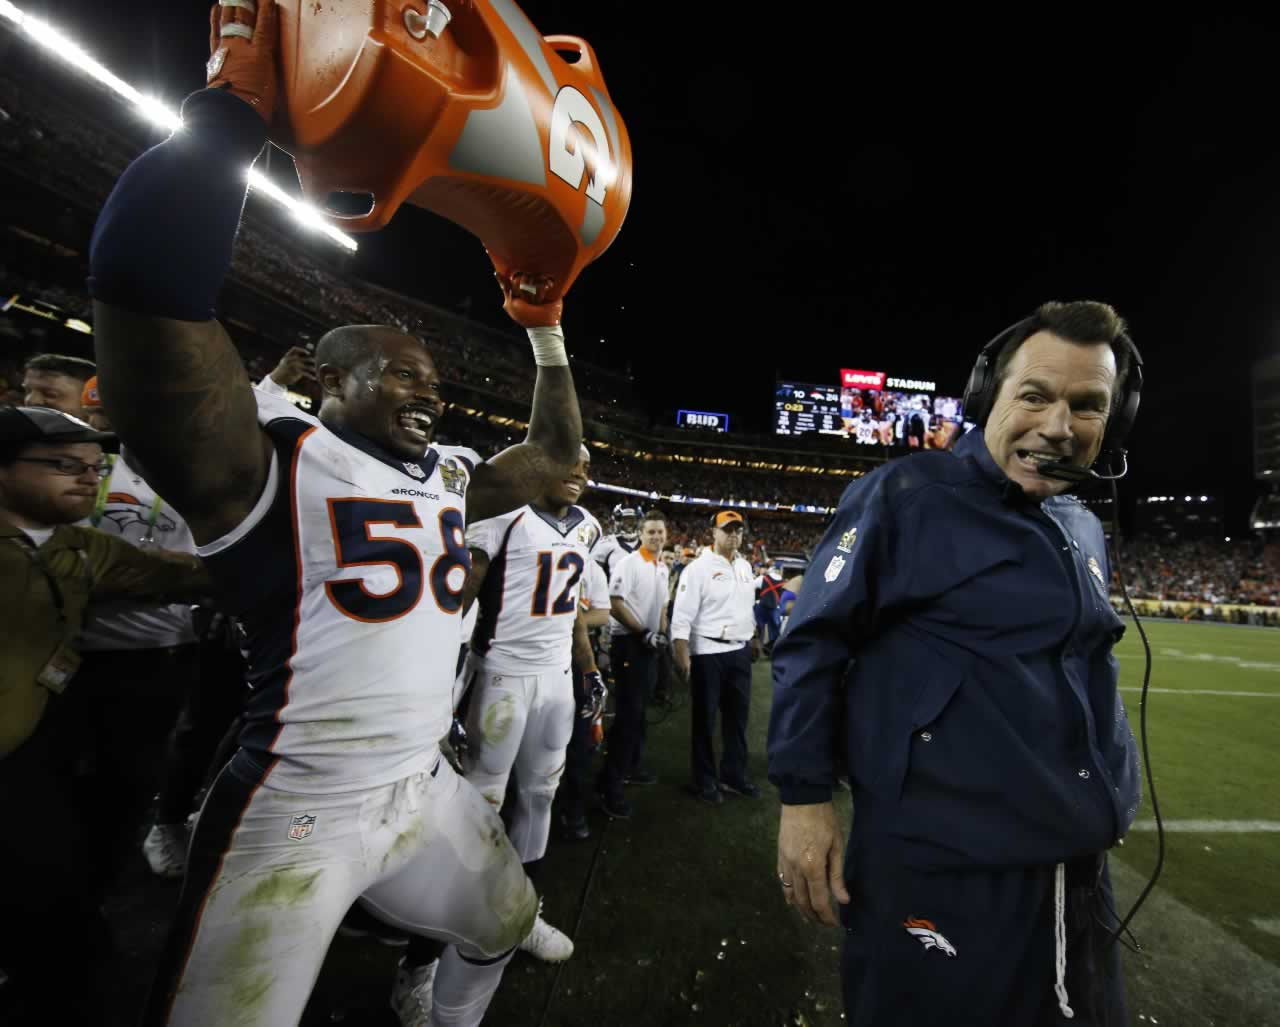 "<div class=""meta image-caption""><div class=""origin-logo origin-image none""><span>none</span></div><span class=""caption-text"">Broncos head coach Gary Kubiak reacts after getting soaked with a sports drink by Von Miller after the NFL Super Bowl 50 football game Sunday, Feb. 7, 2016, in Santa Clara, Calif. (AP Photo/Matt Slocum)</span></div>"